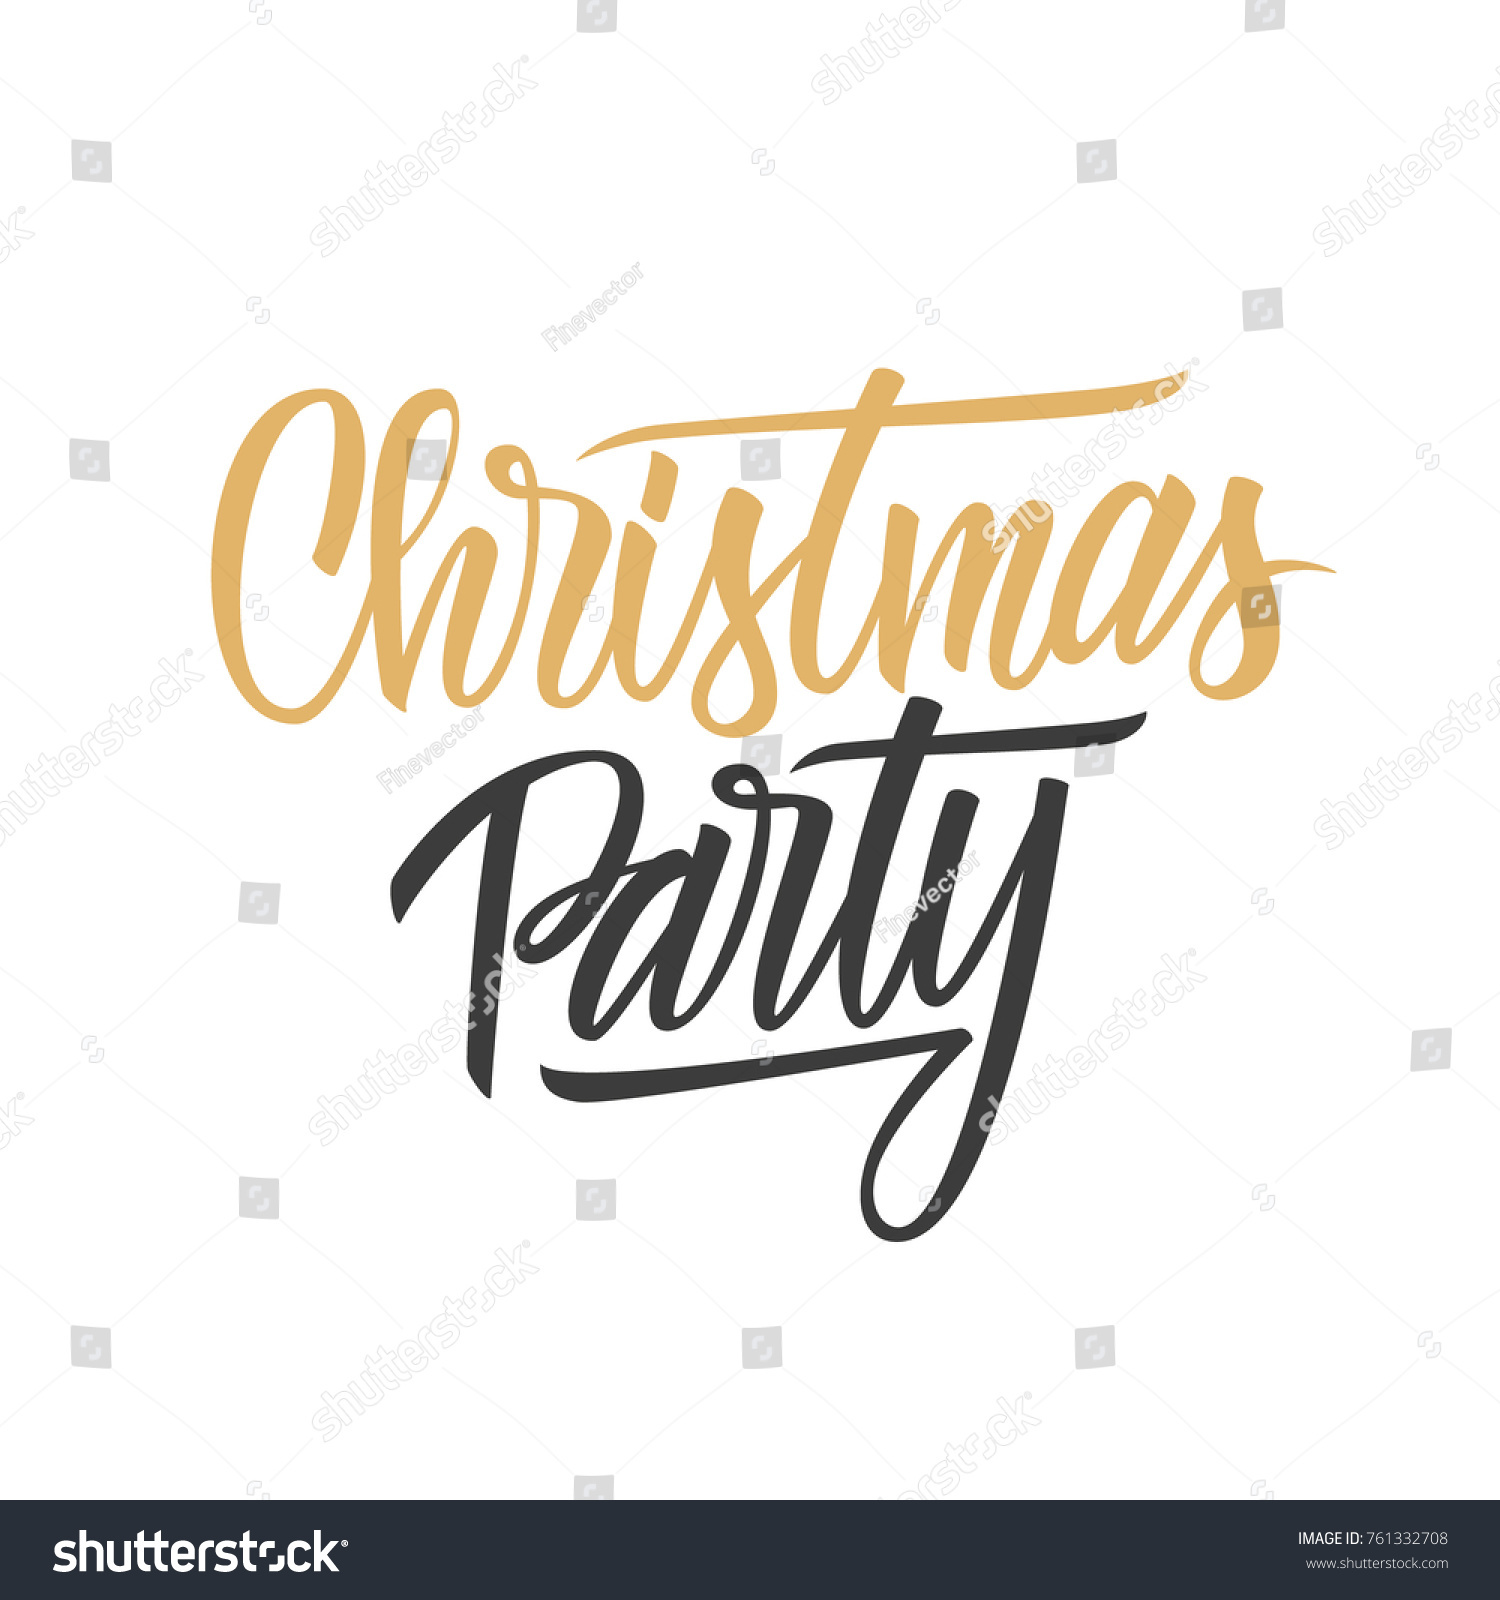 Christmas party hand lettering text design stock vector 761332708 christmas party hand lettering text design card template creative typography for holiday greetings and invitations kristyandbryce Choice Image